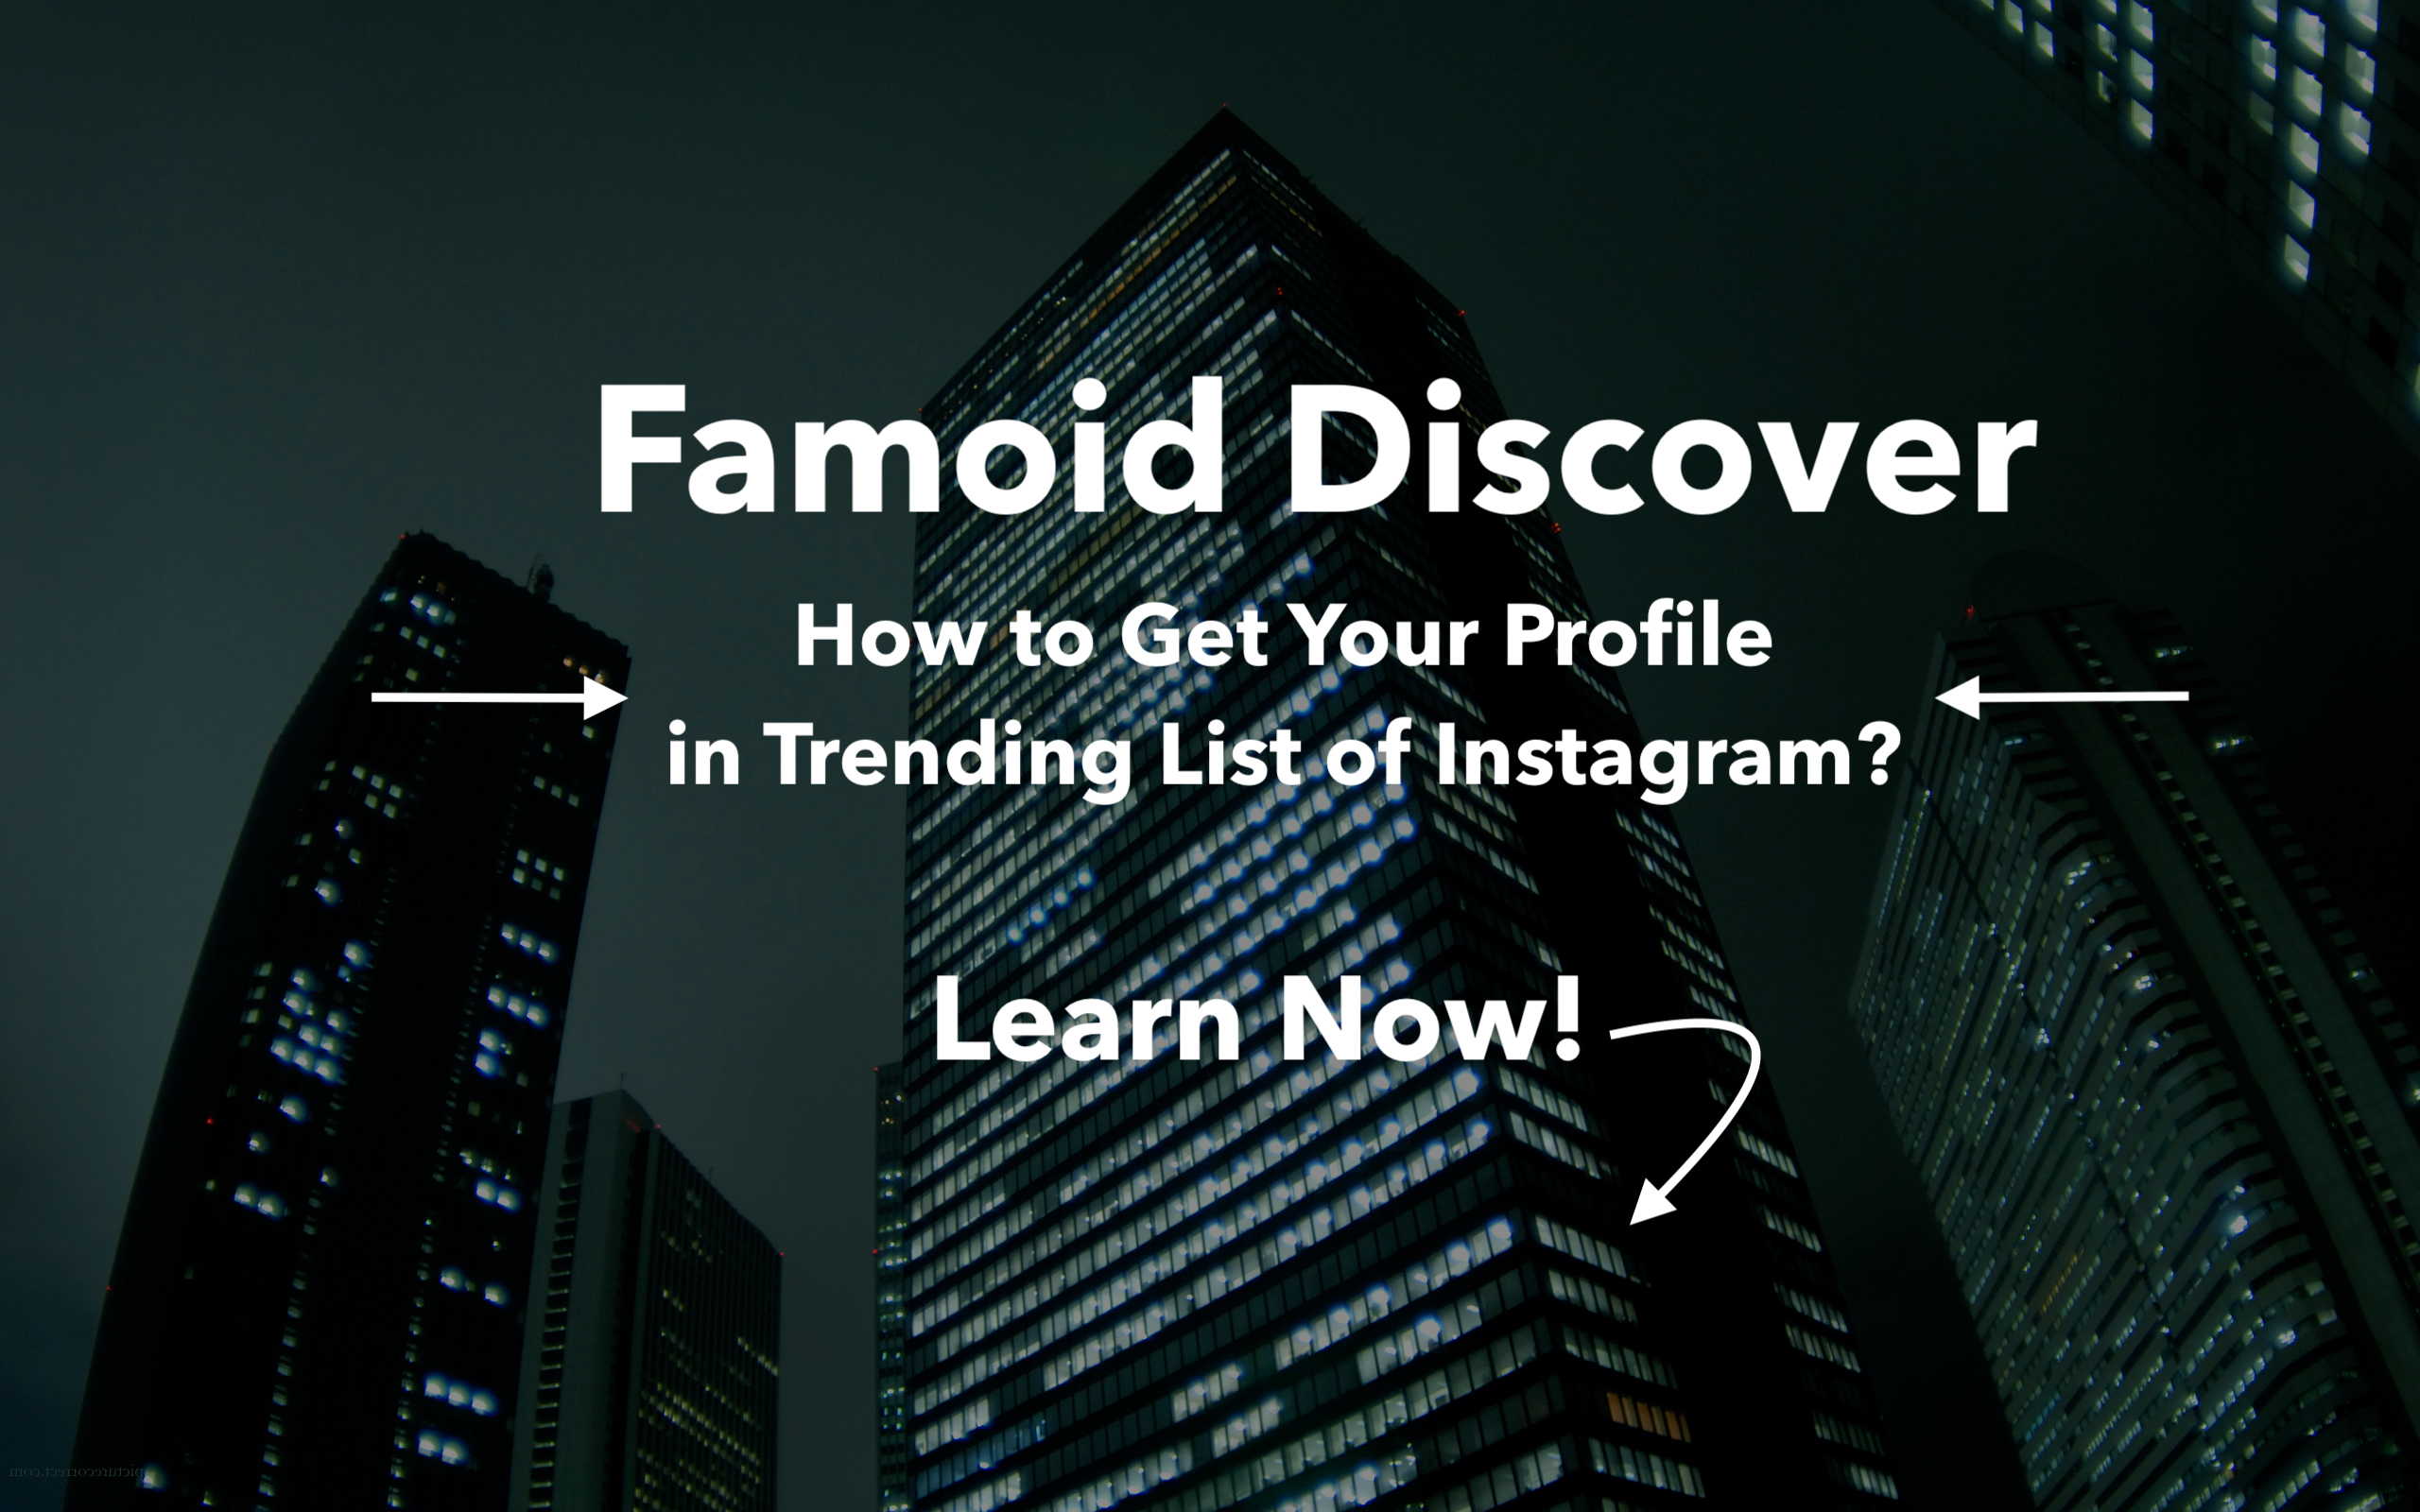 How to Get Your Profile in Explore Page of Instagram in 2019? - Famoid